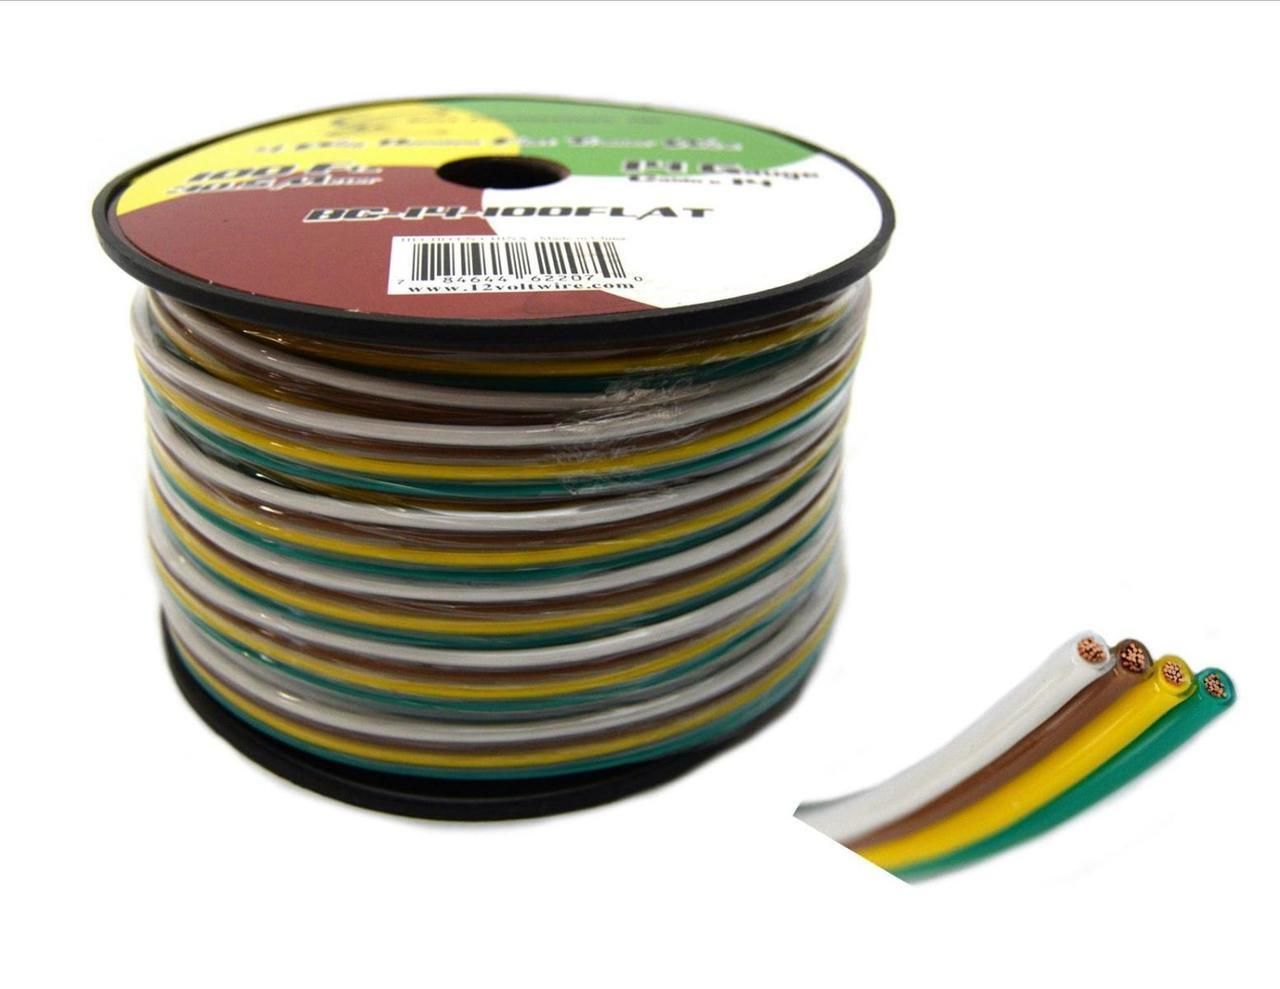 Best Connections Flat Trailer Light Cable Wiring Harness 100ft 14 AWG 4 Wire  CCA for sale online   eBayeBay